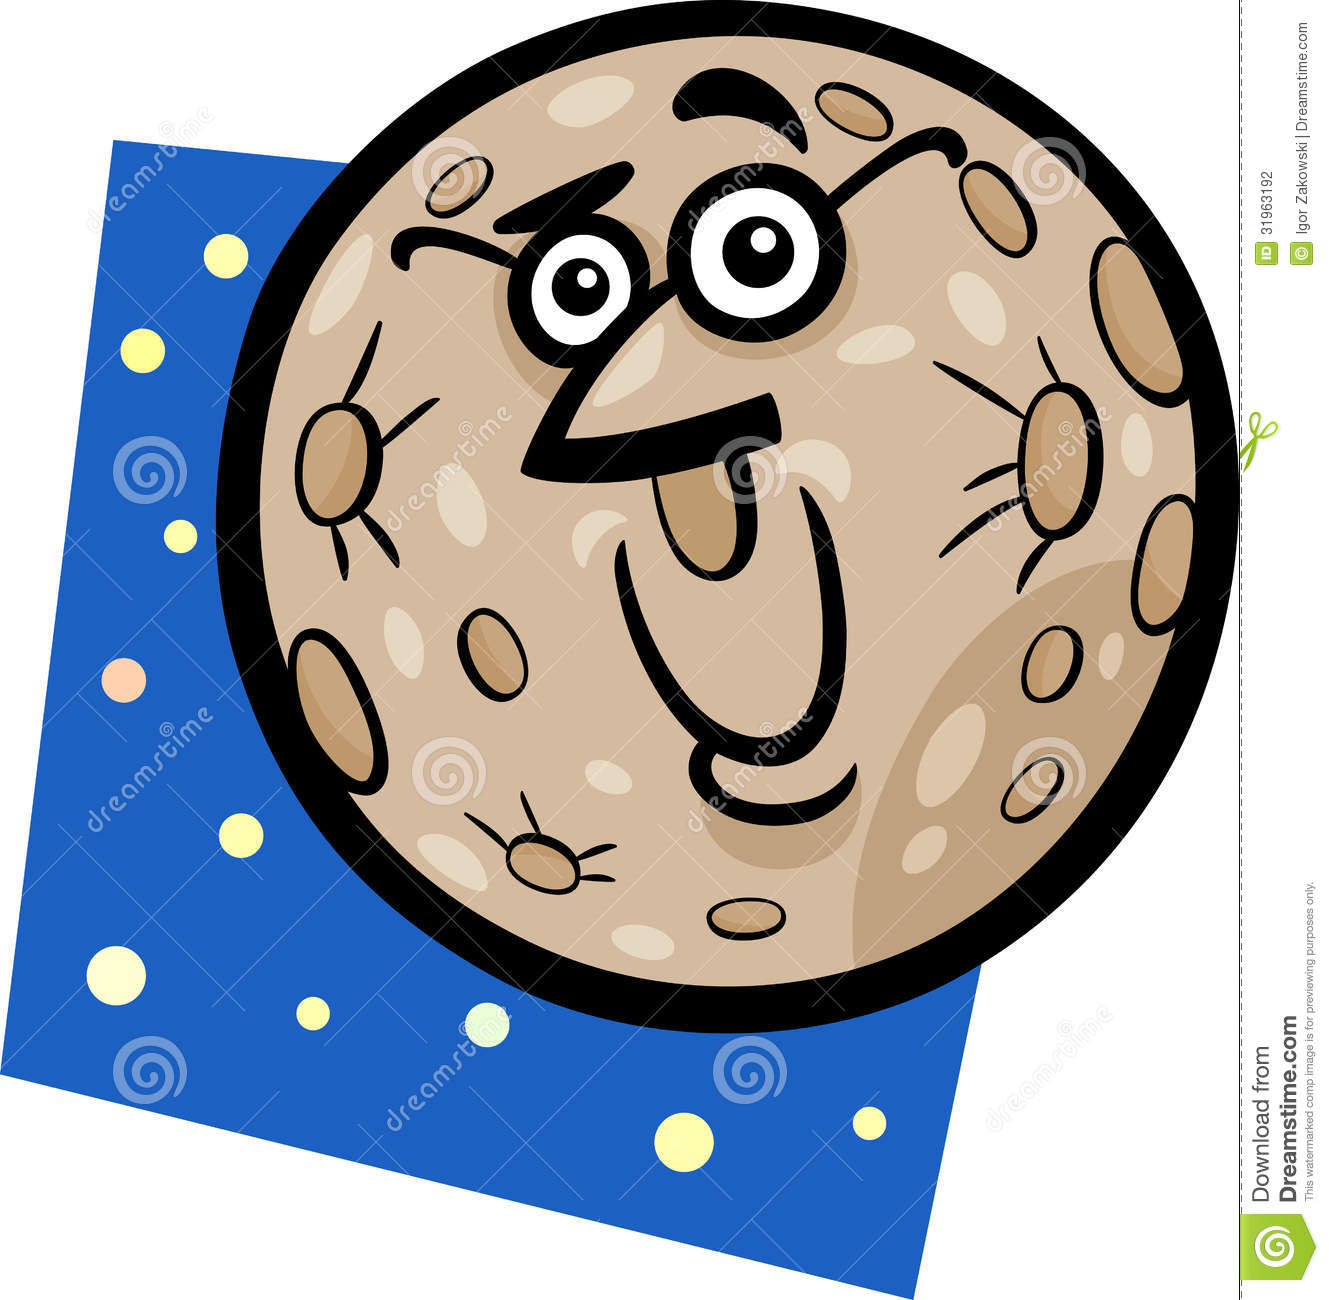 Pluto a Planet Again It May Happen This Year  The Crux